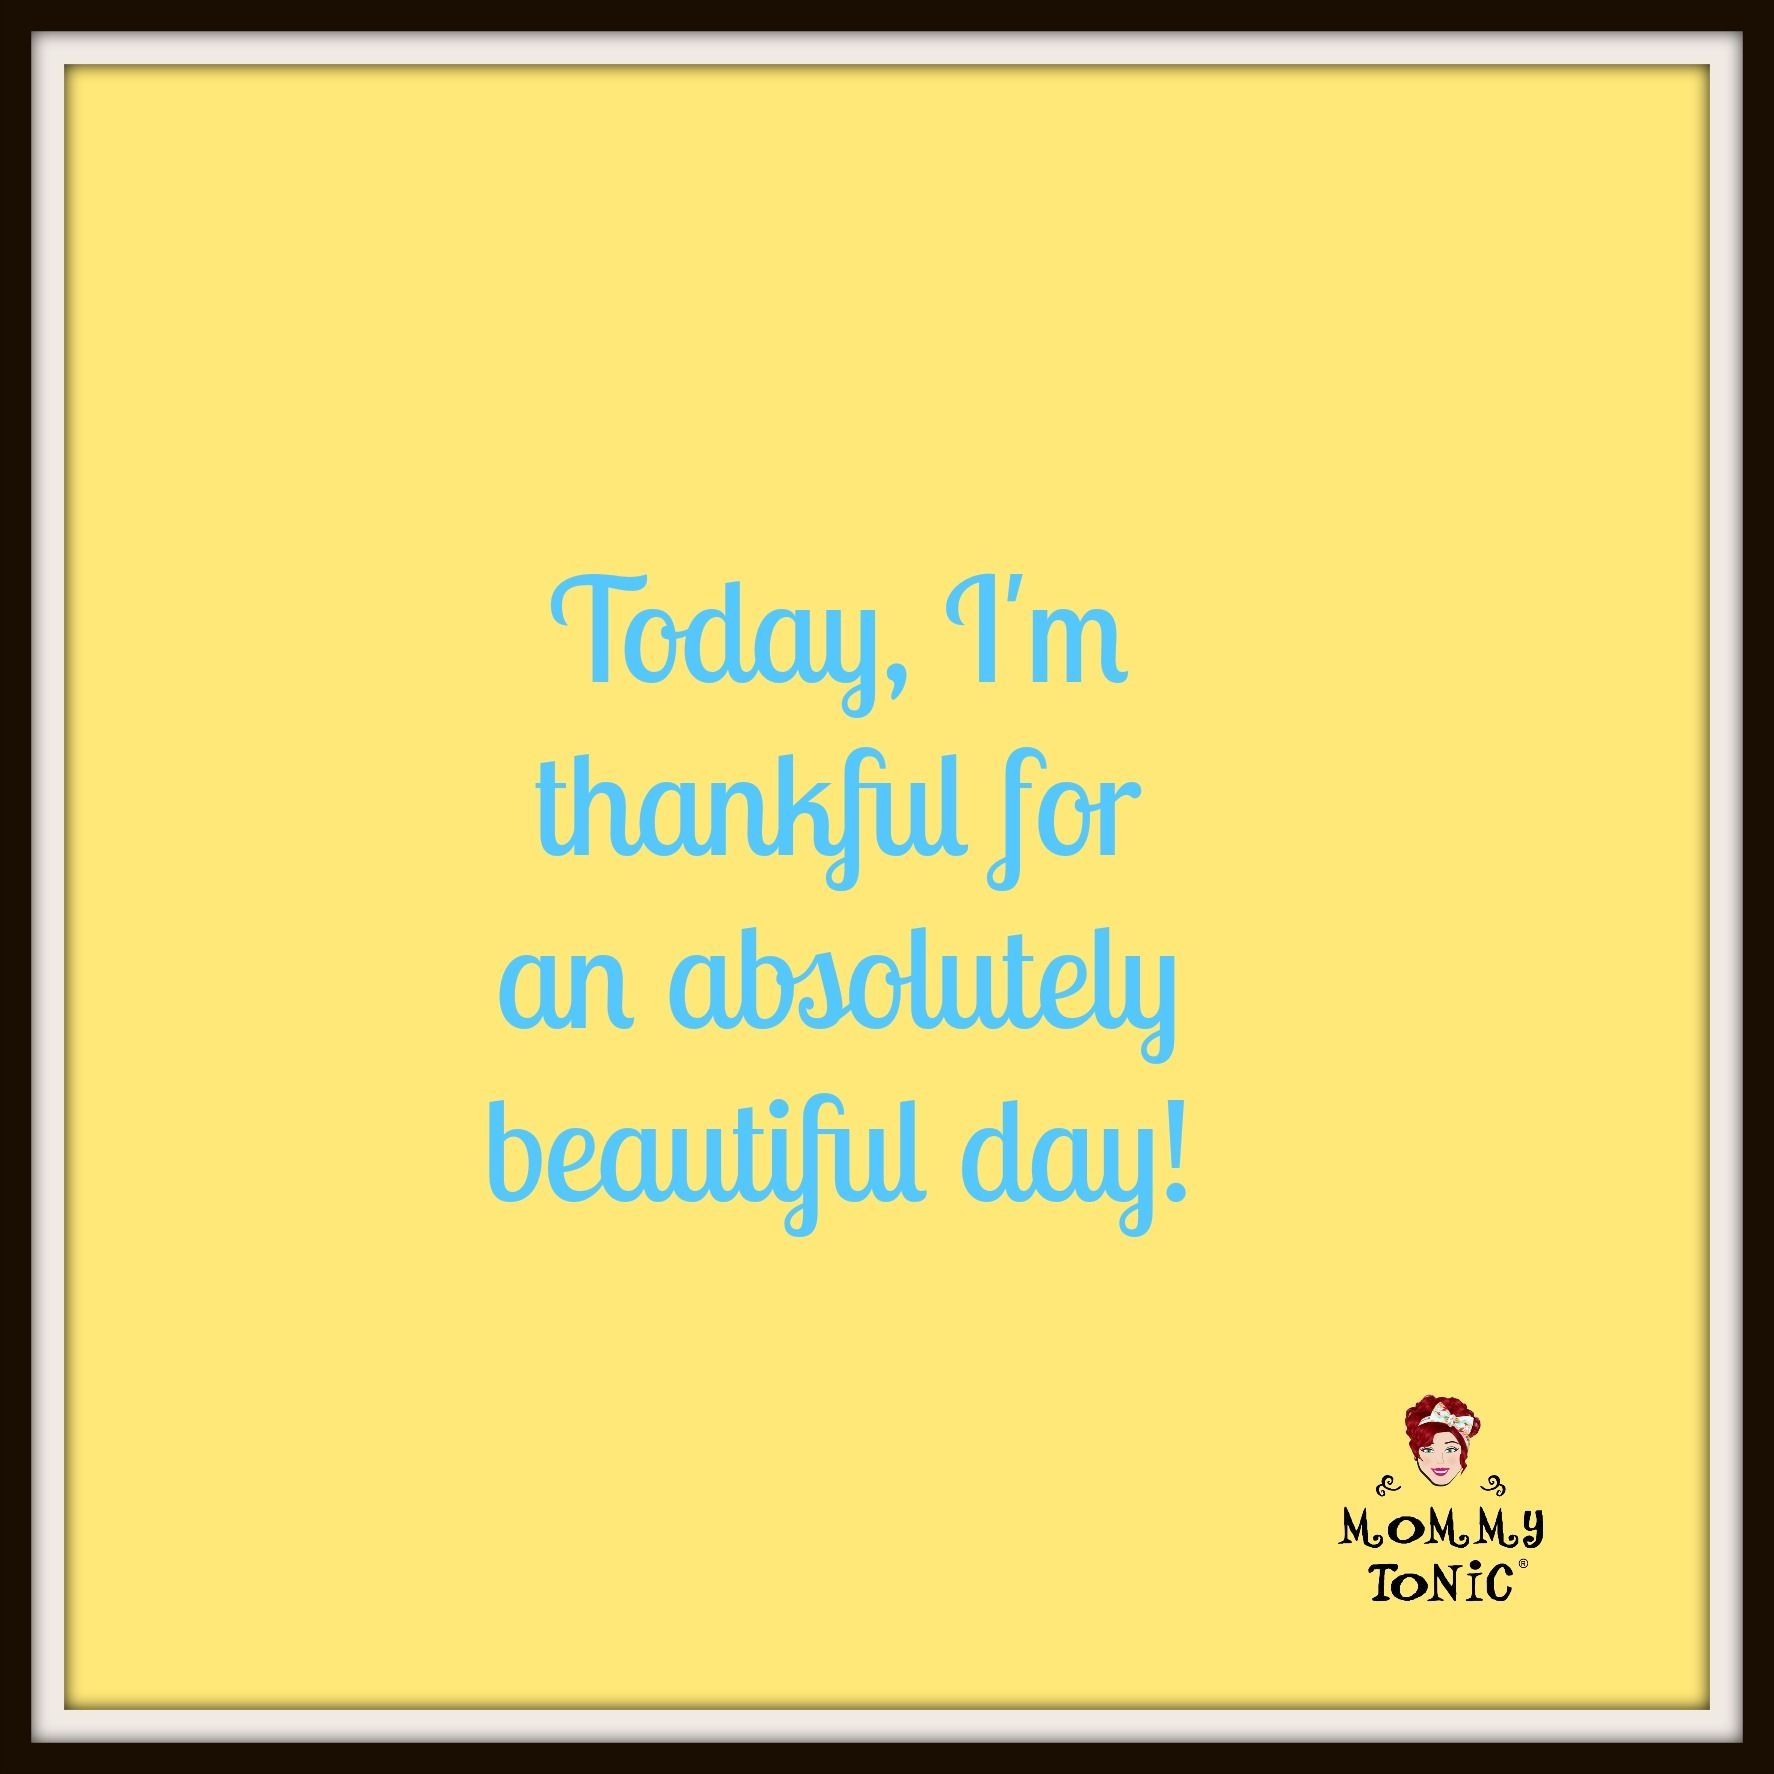 Today, I'm thankful for an absolutely beautiful day! What are you #thankful for?